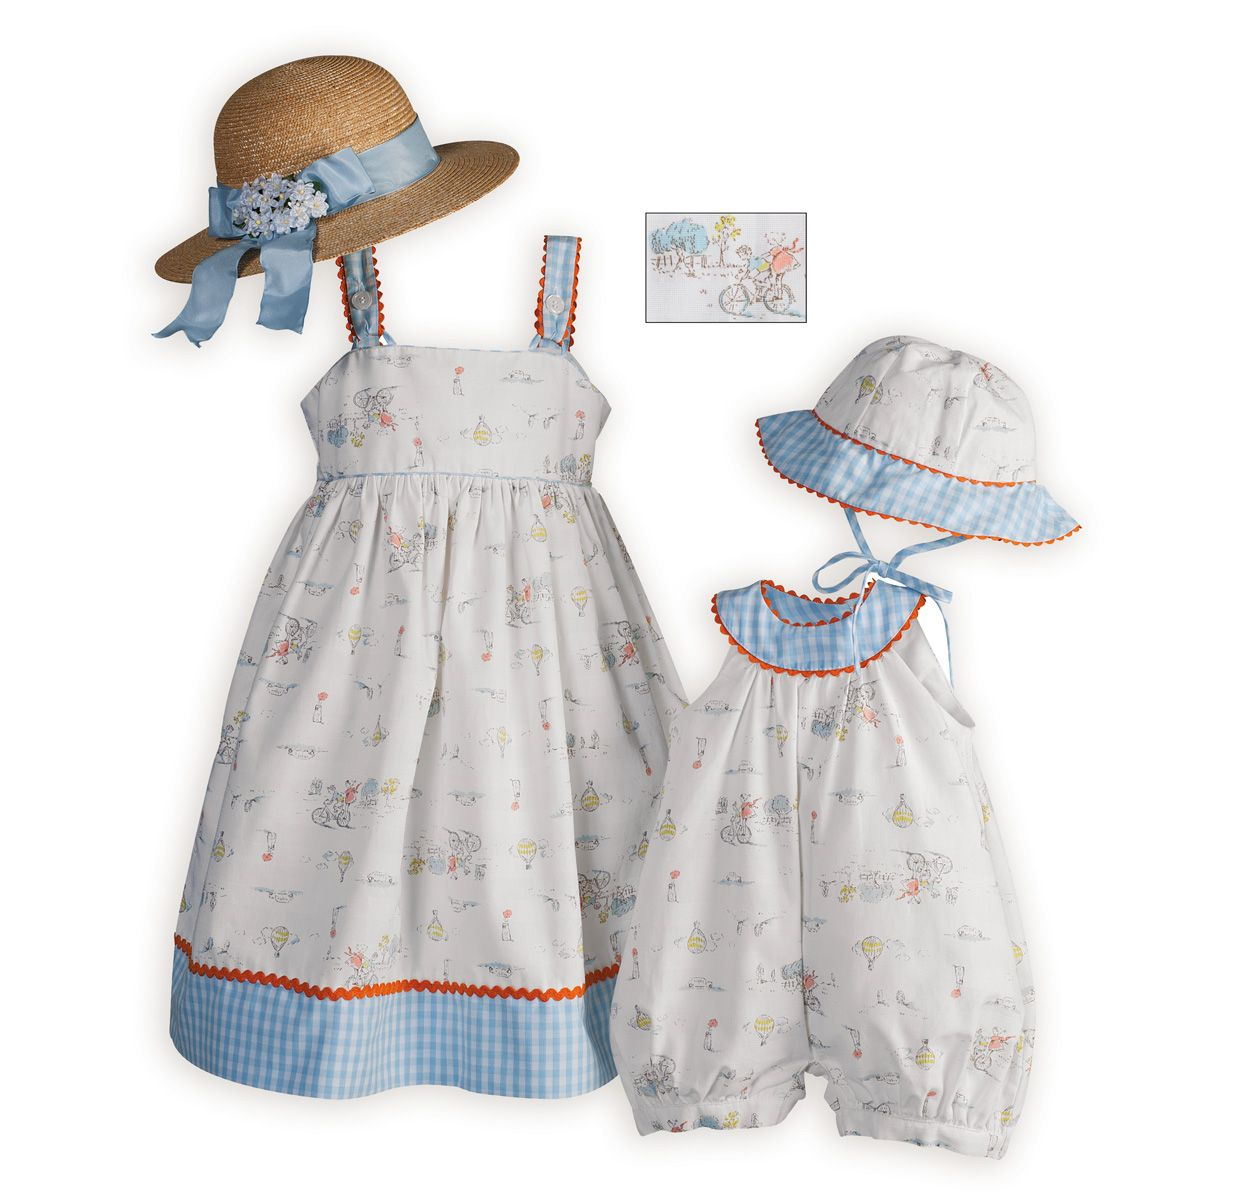 Sister Little Matching Outfits Home Spring Casual Wear Countryside Ride